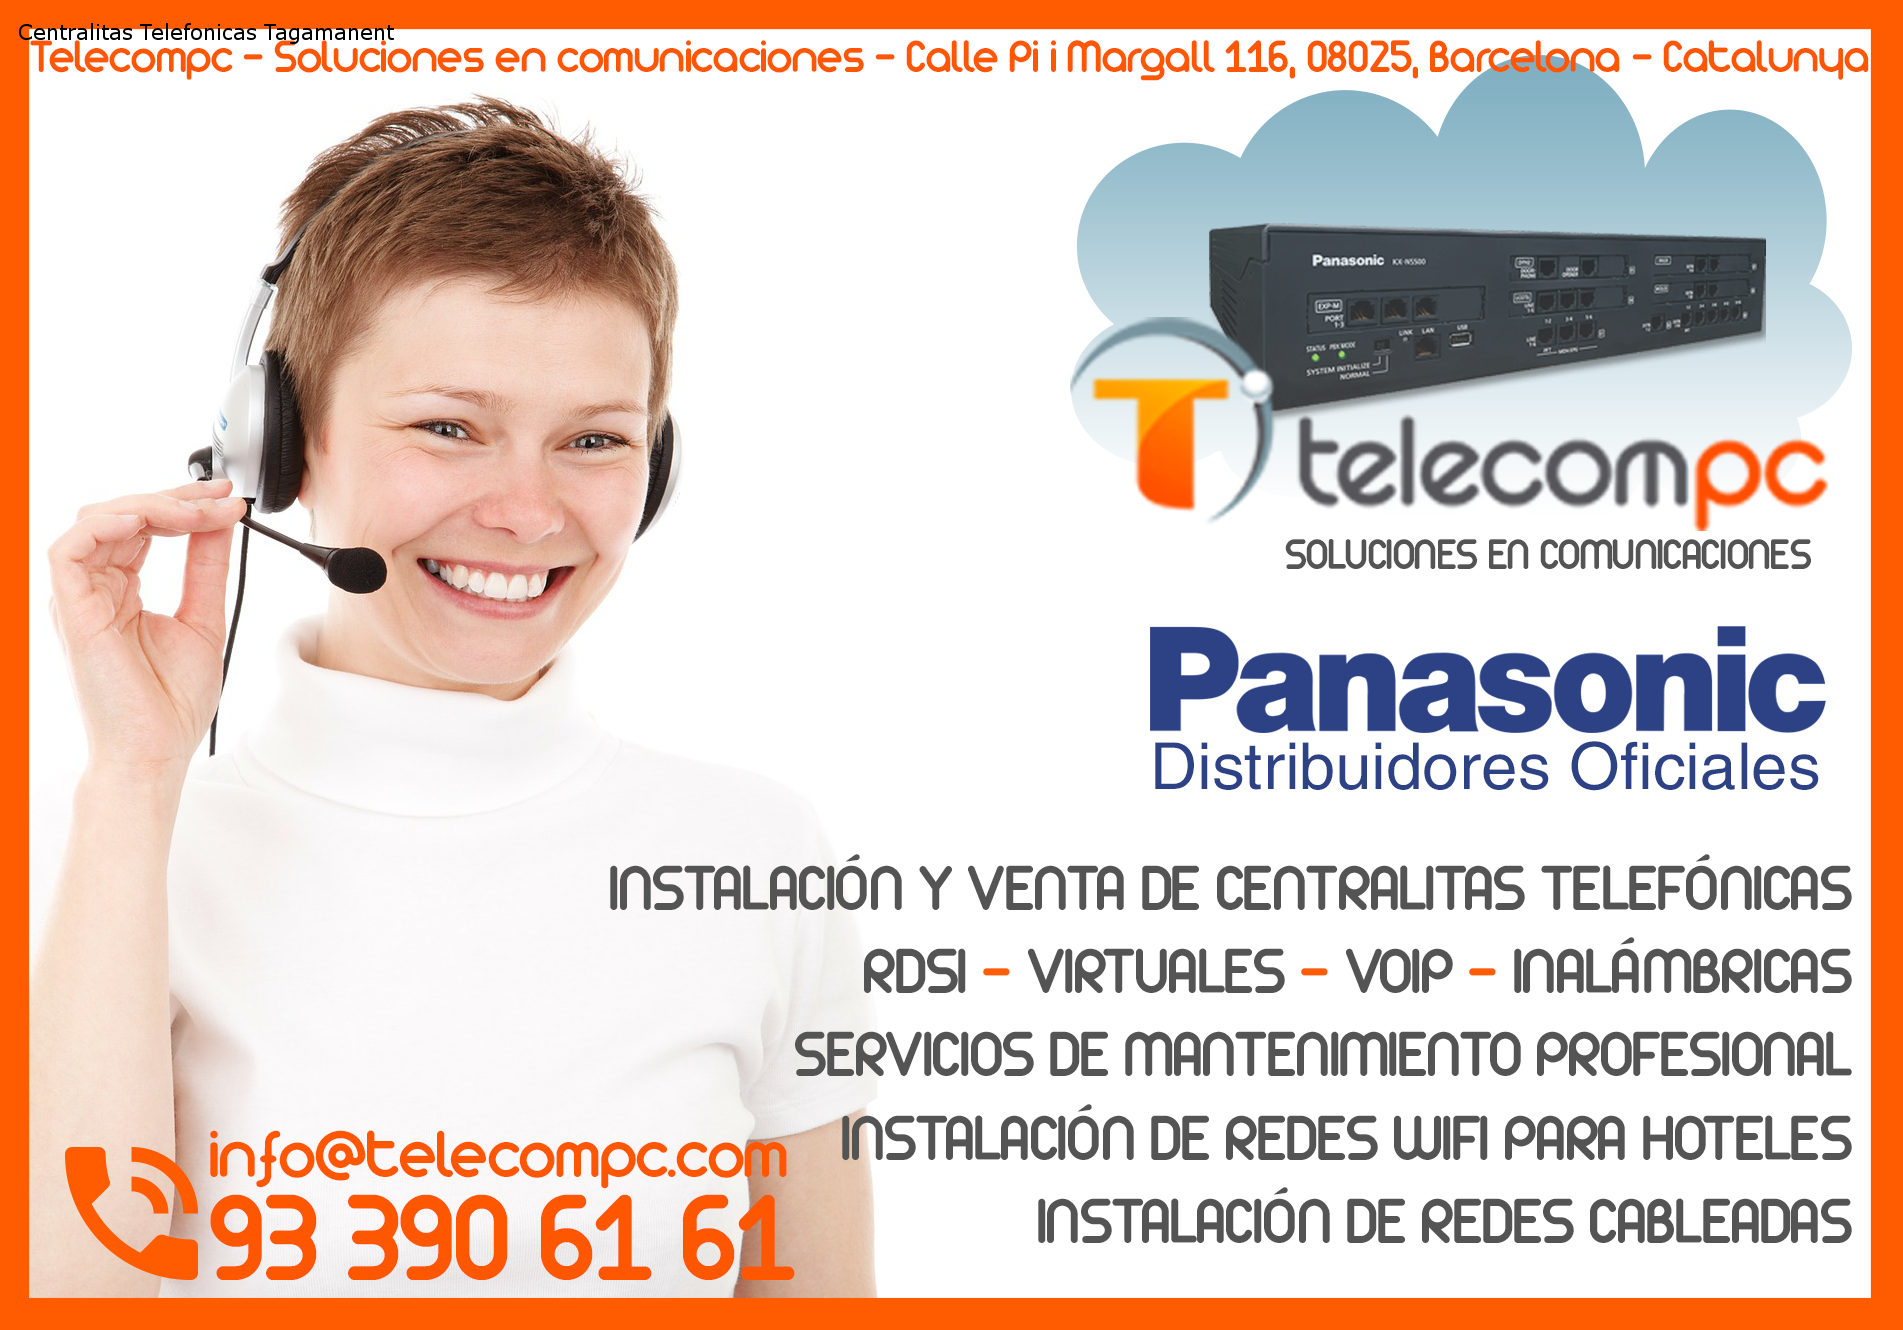 Centralitas Telefonicas Tagamanent